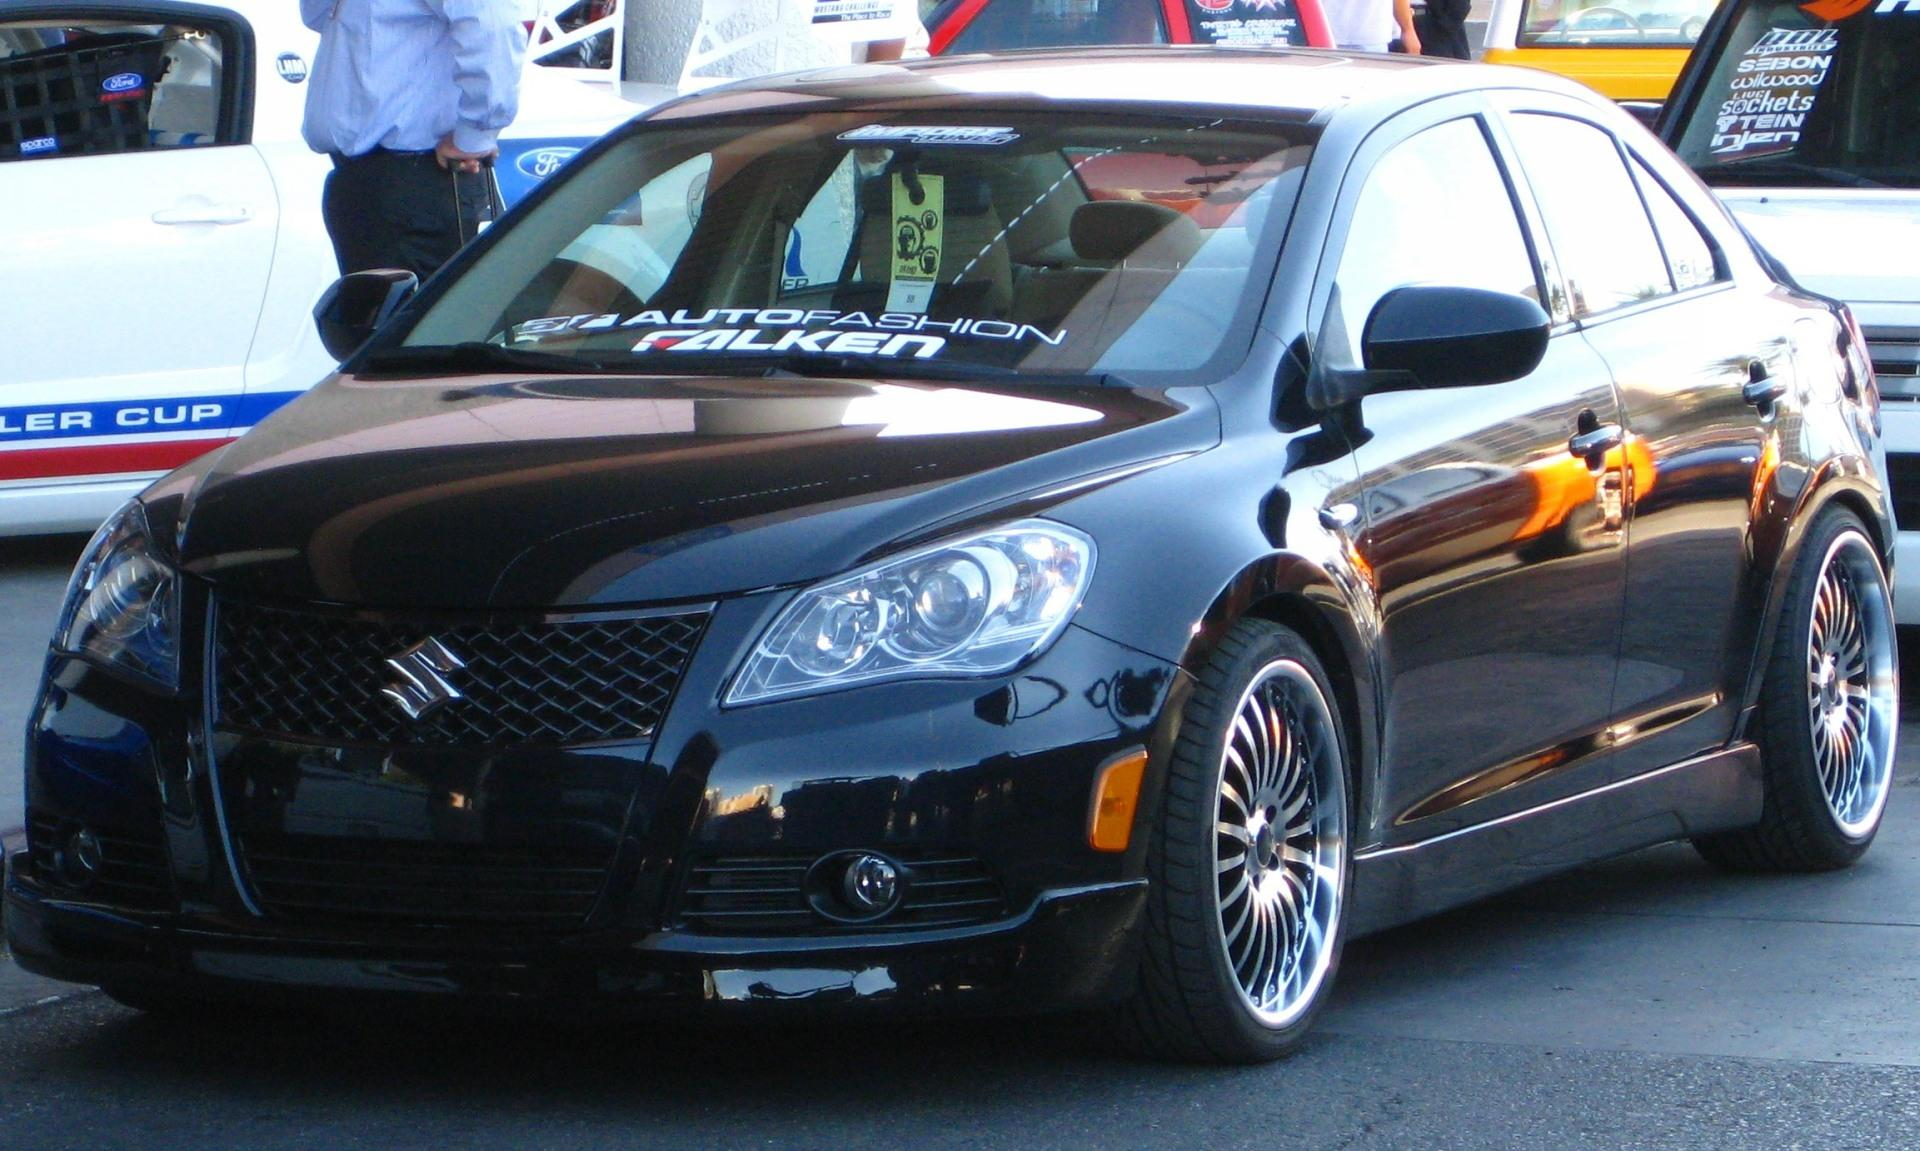 2009 Suzuki Import Tuner Kizashi News And Information